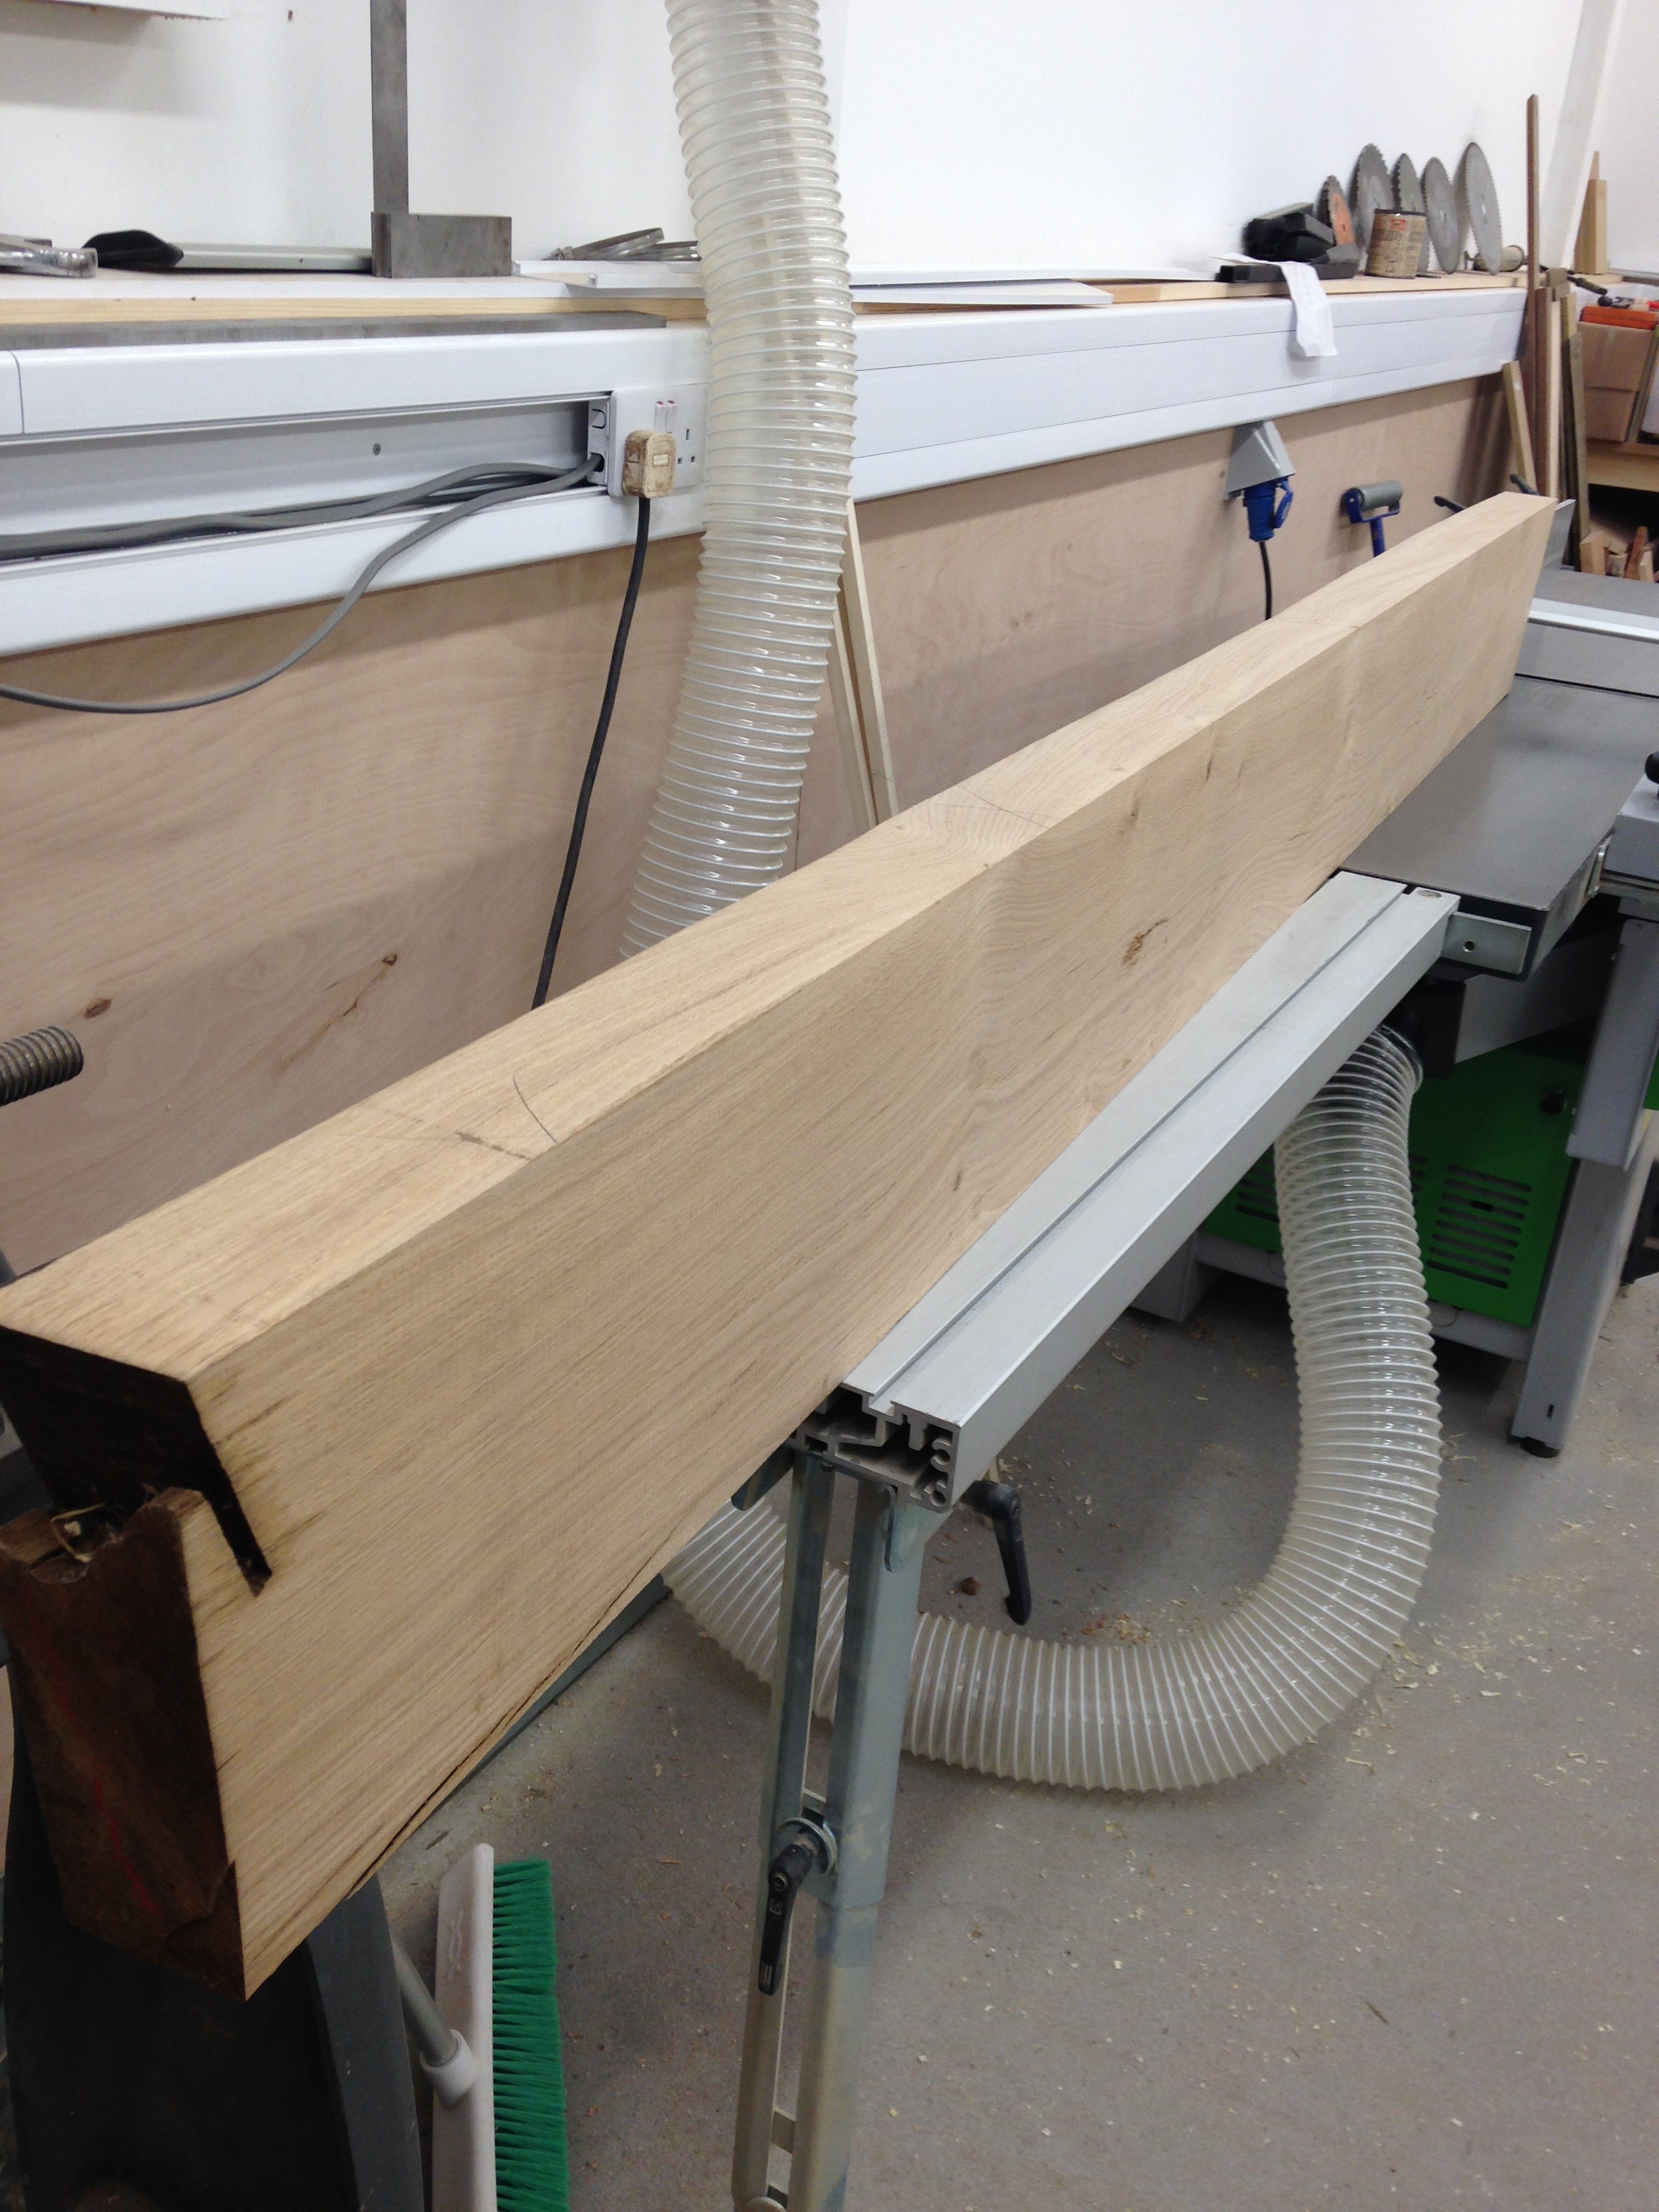 You never really know what you have got until you scratch the surface...my how pleased we were! This was one of the five boards that goes on to make the top of the table, each board is planed square and then cut to size, we must have lifted each a100 times.